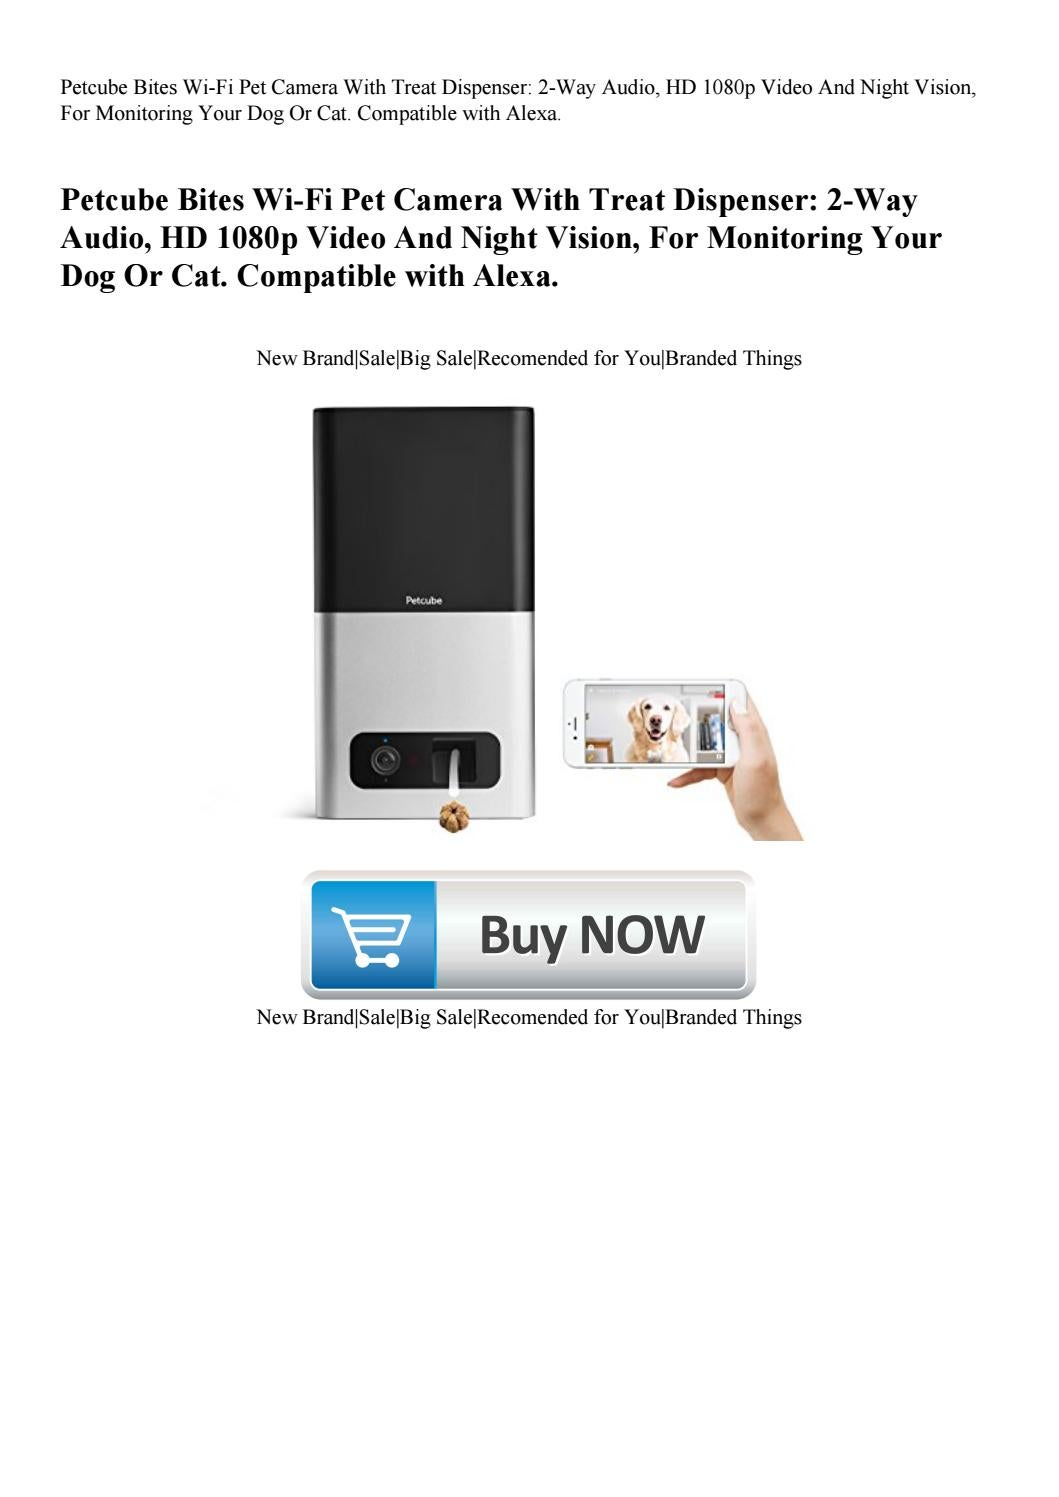 HD 1080p Video Monitor with 2-Way Petcube Bites Pet Camera with Treat Dispenser